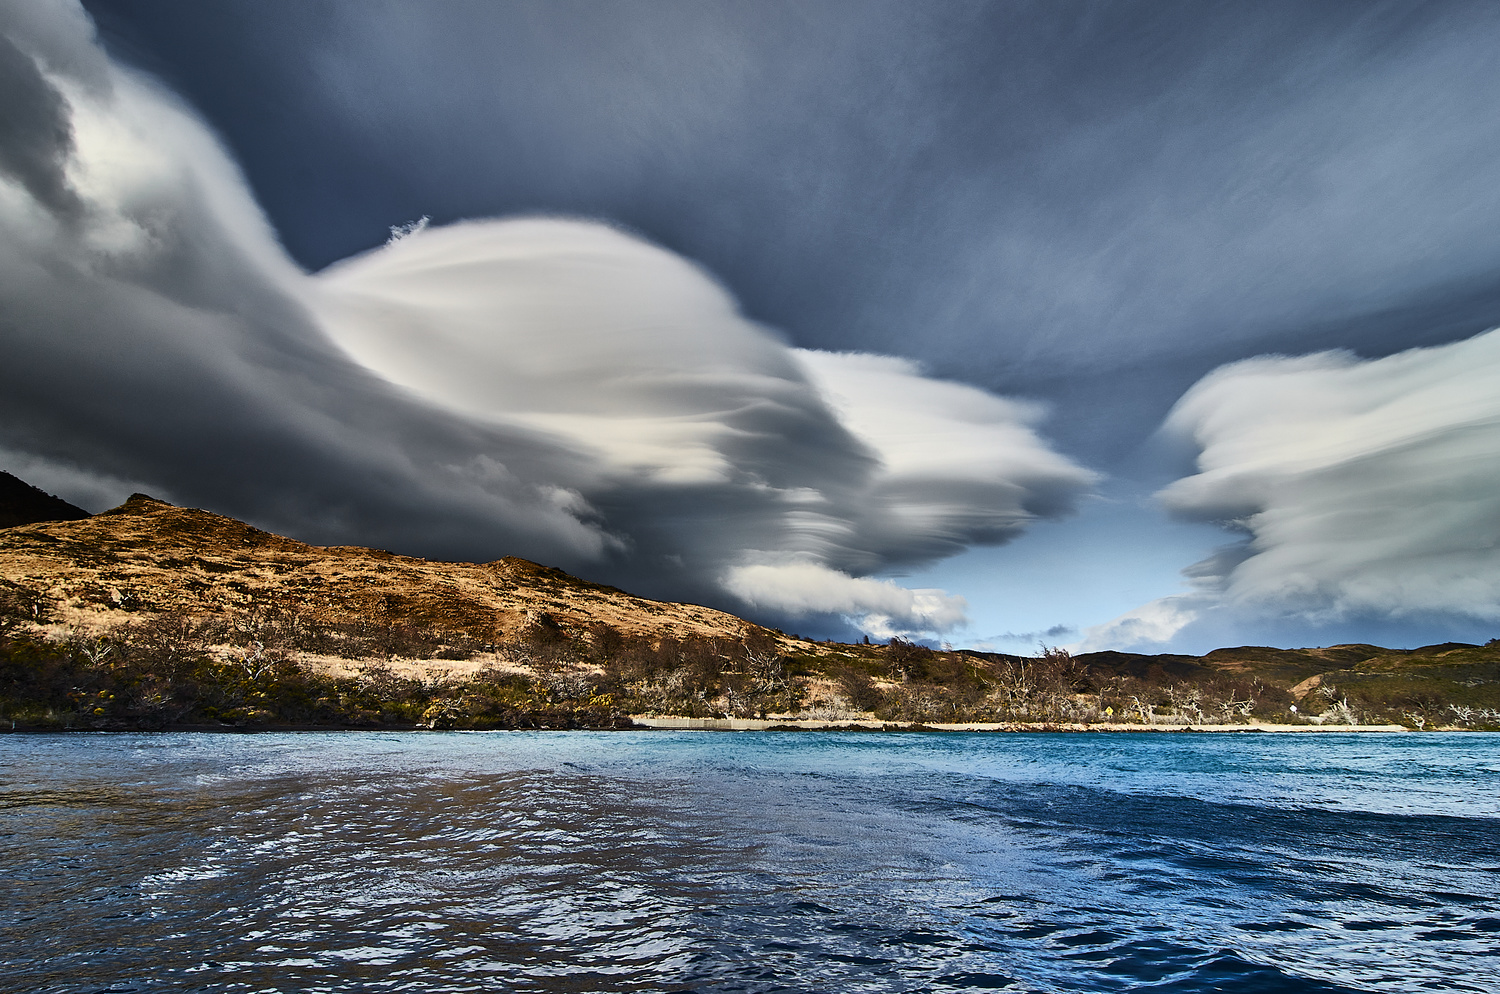 Lenticular Clouds by Manuel Fuentes